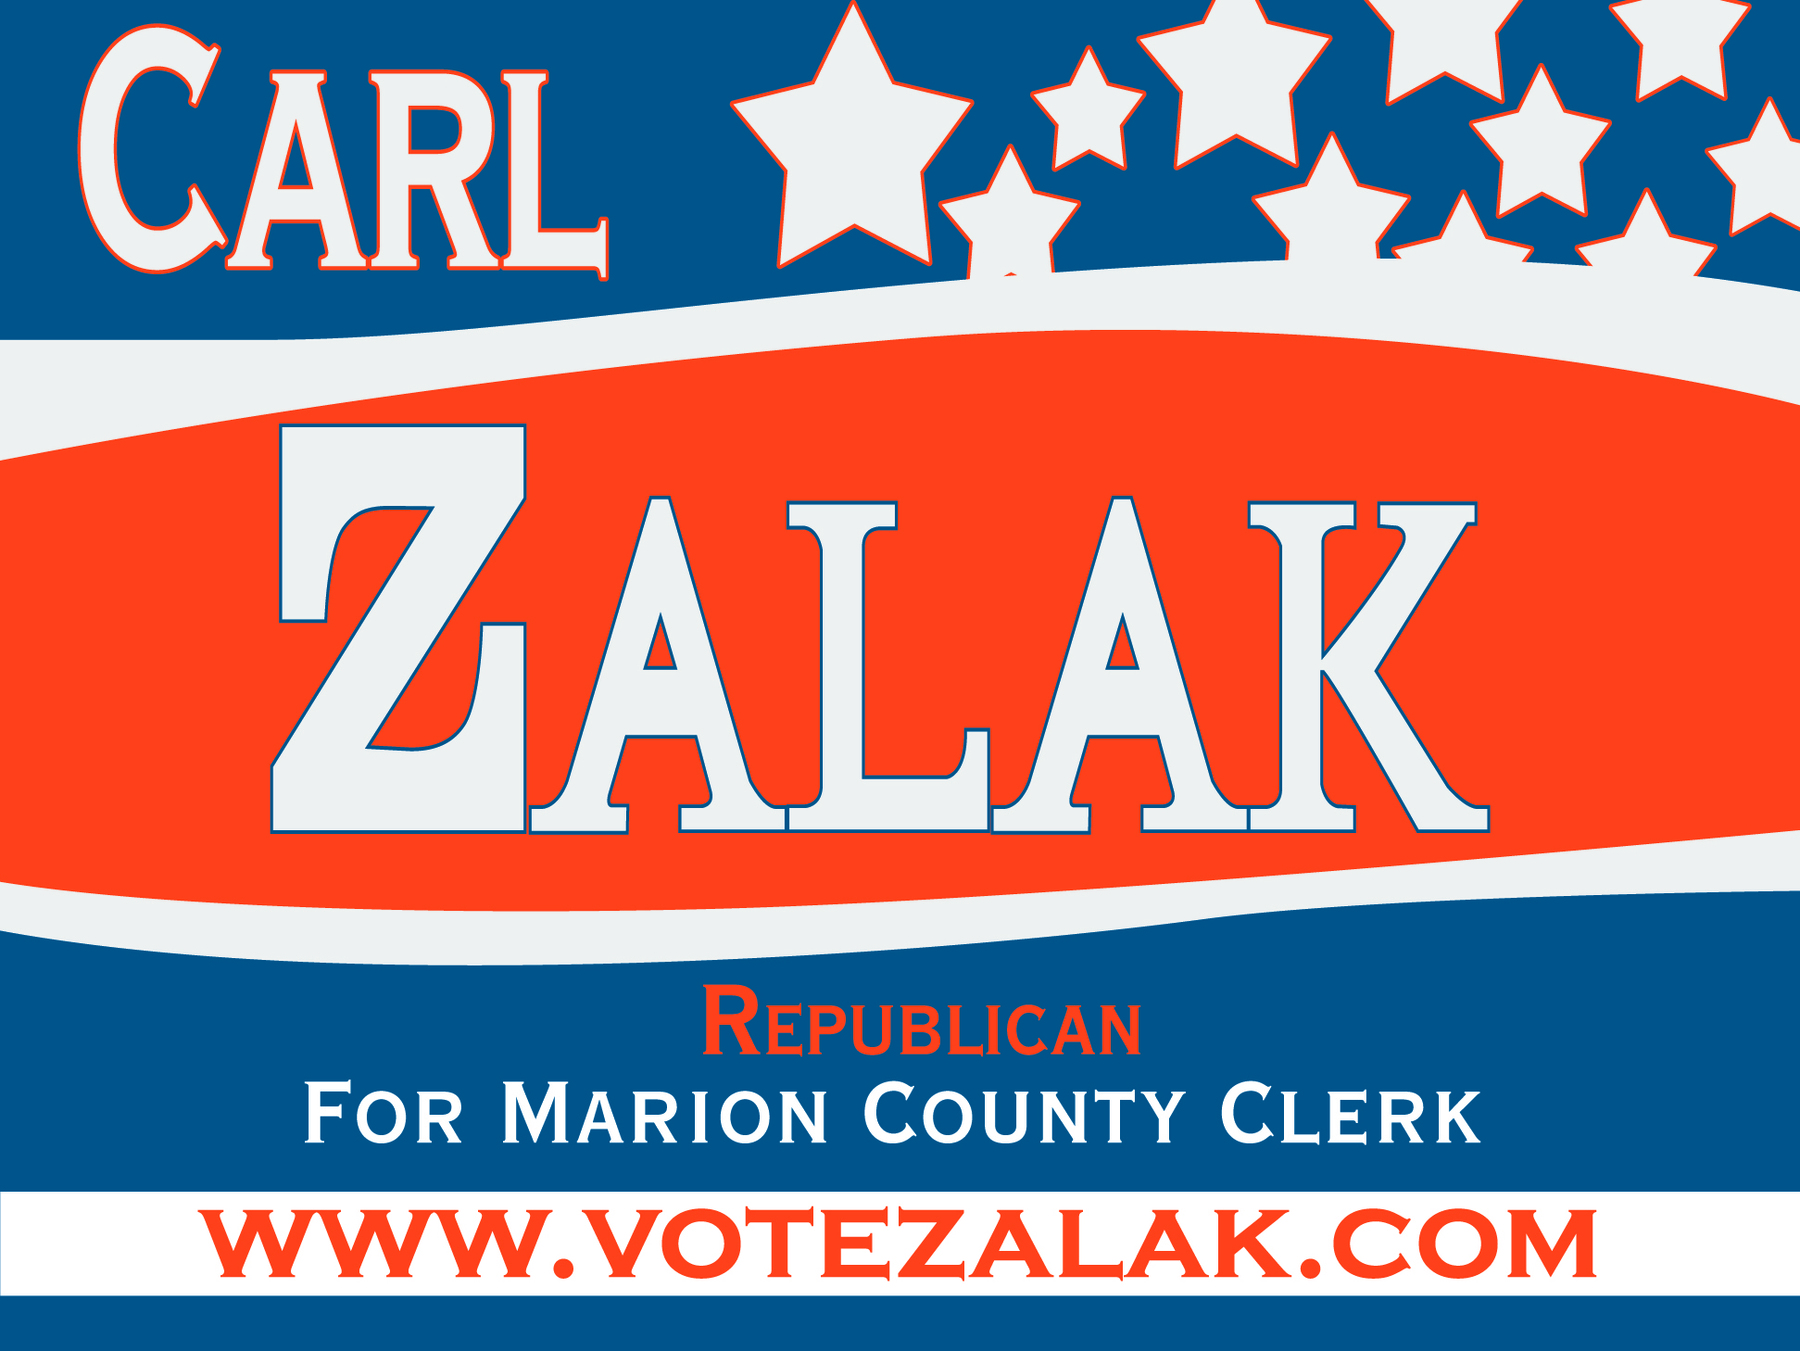 Carl Zalak Campaign: General Fund